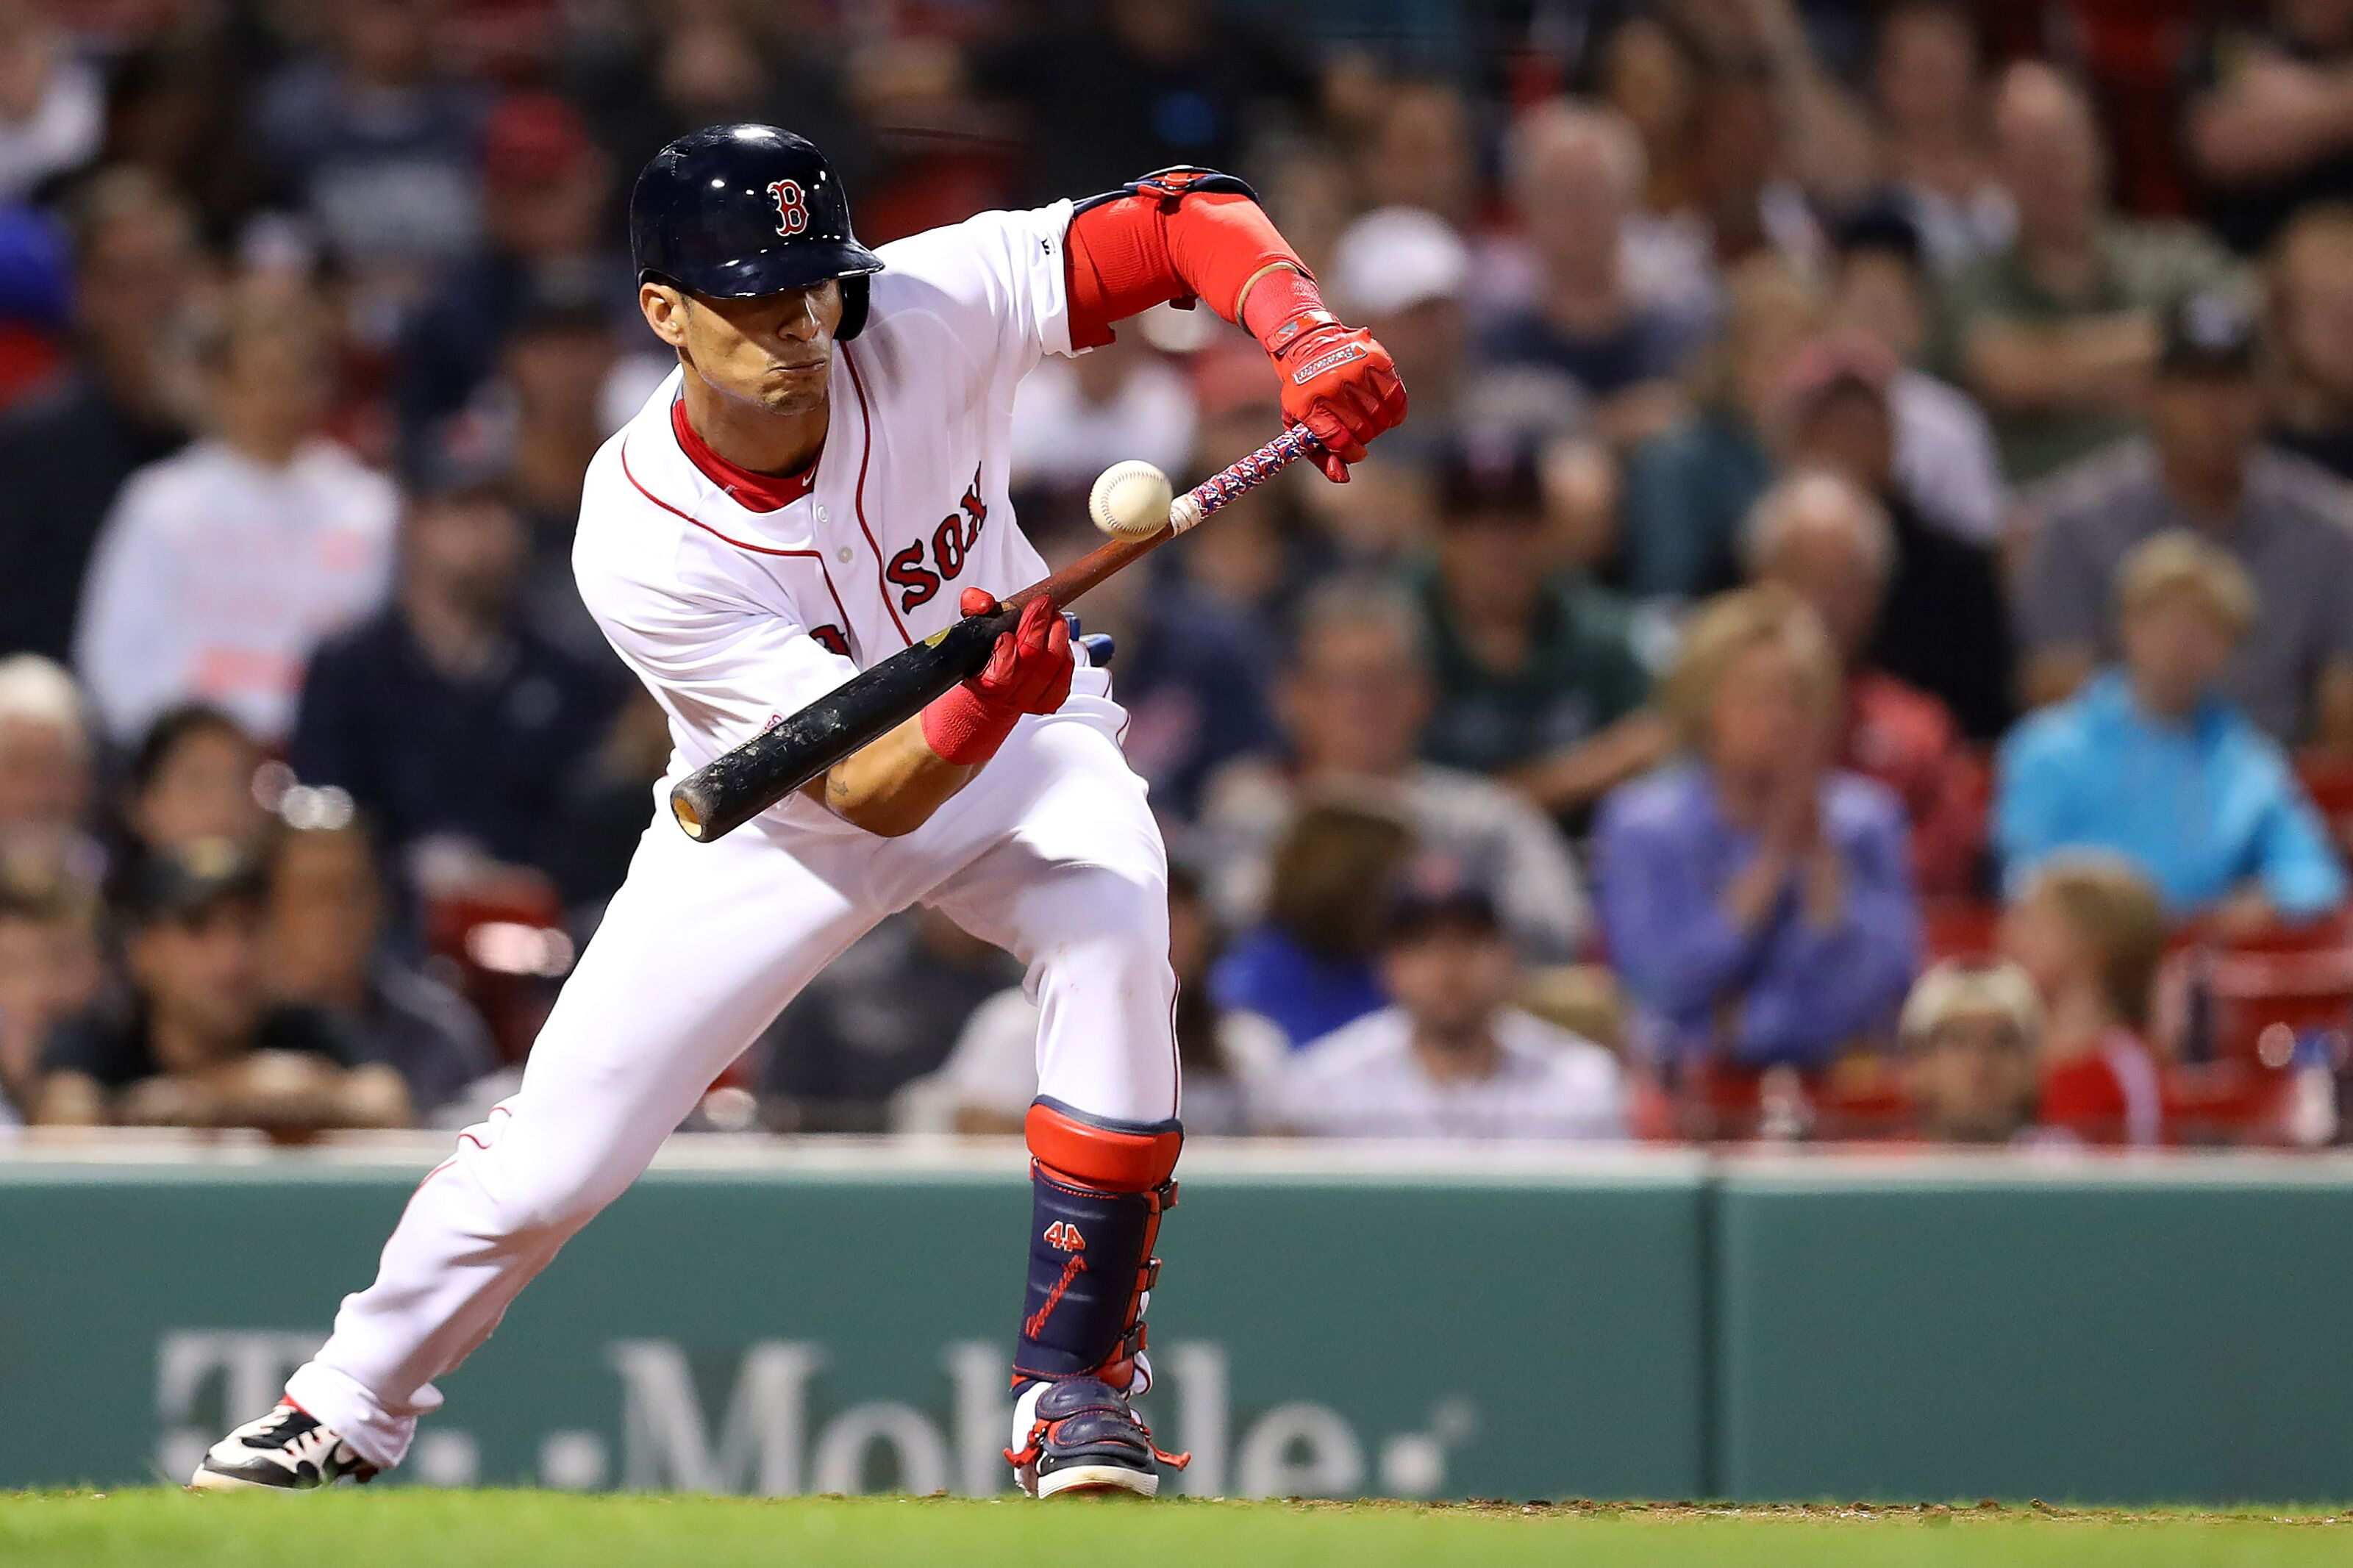 Boston Red Sox begin salary saving 40-man roster exodus